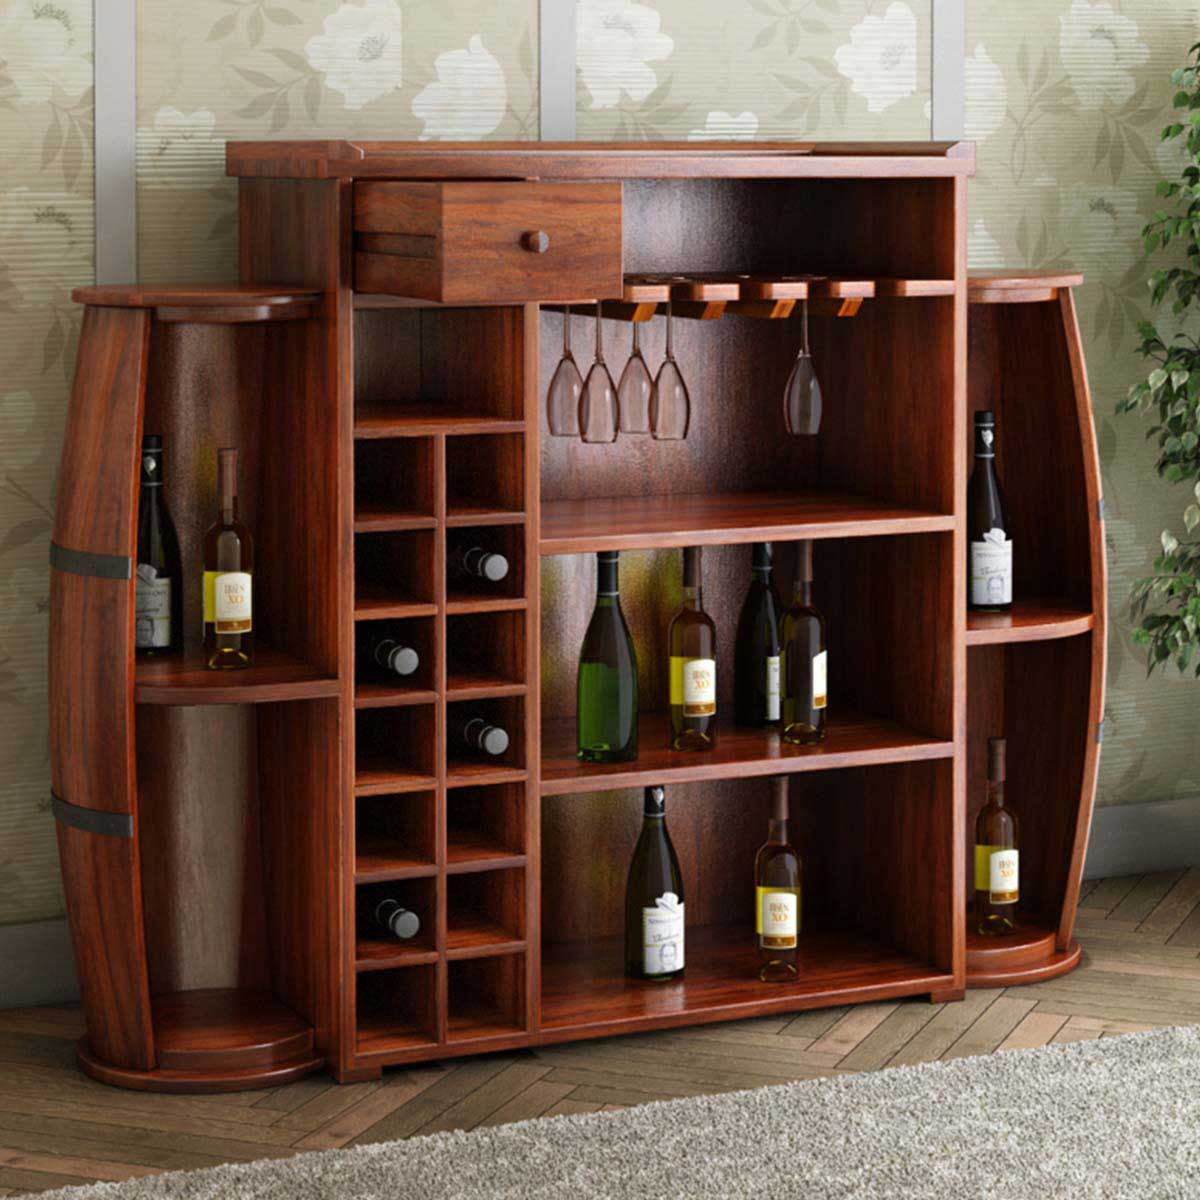 Home Bar Furniture: Harrod Handcrafted Rustic Solid Wood Barrel Design Home